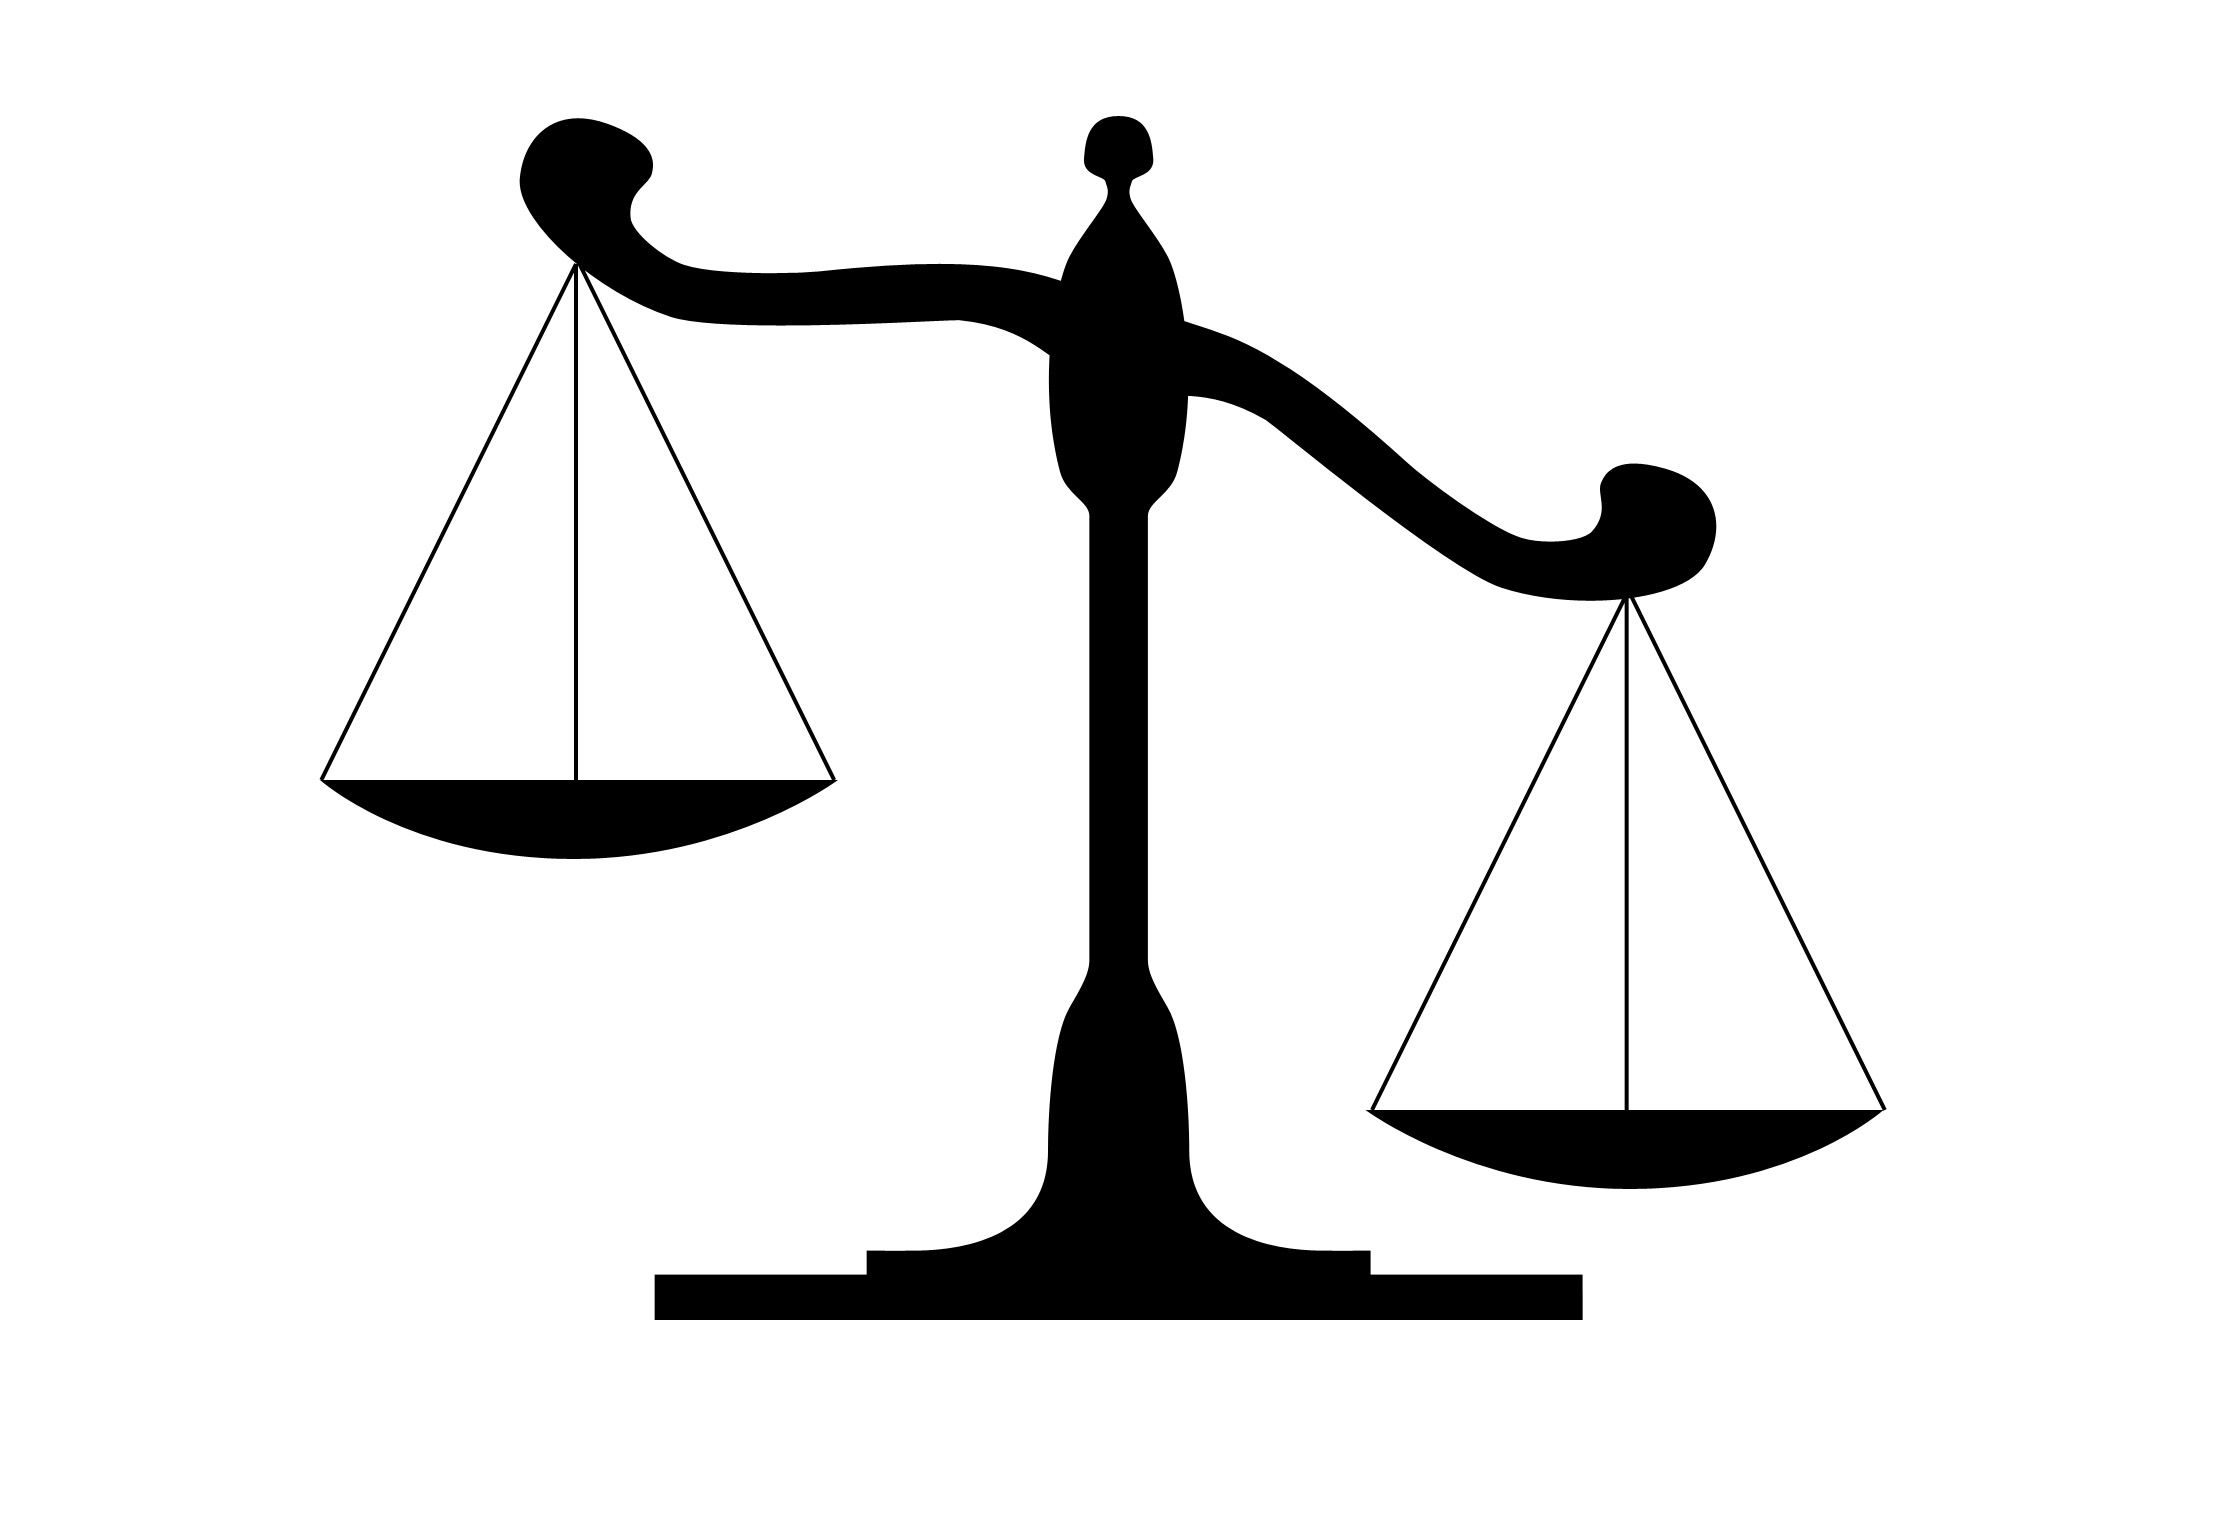 Justice clipart mock trial. Free government ethics cliparts